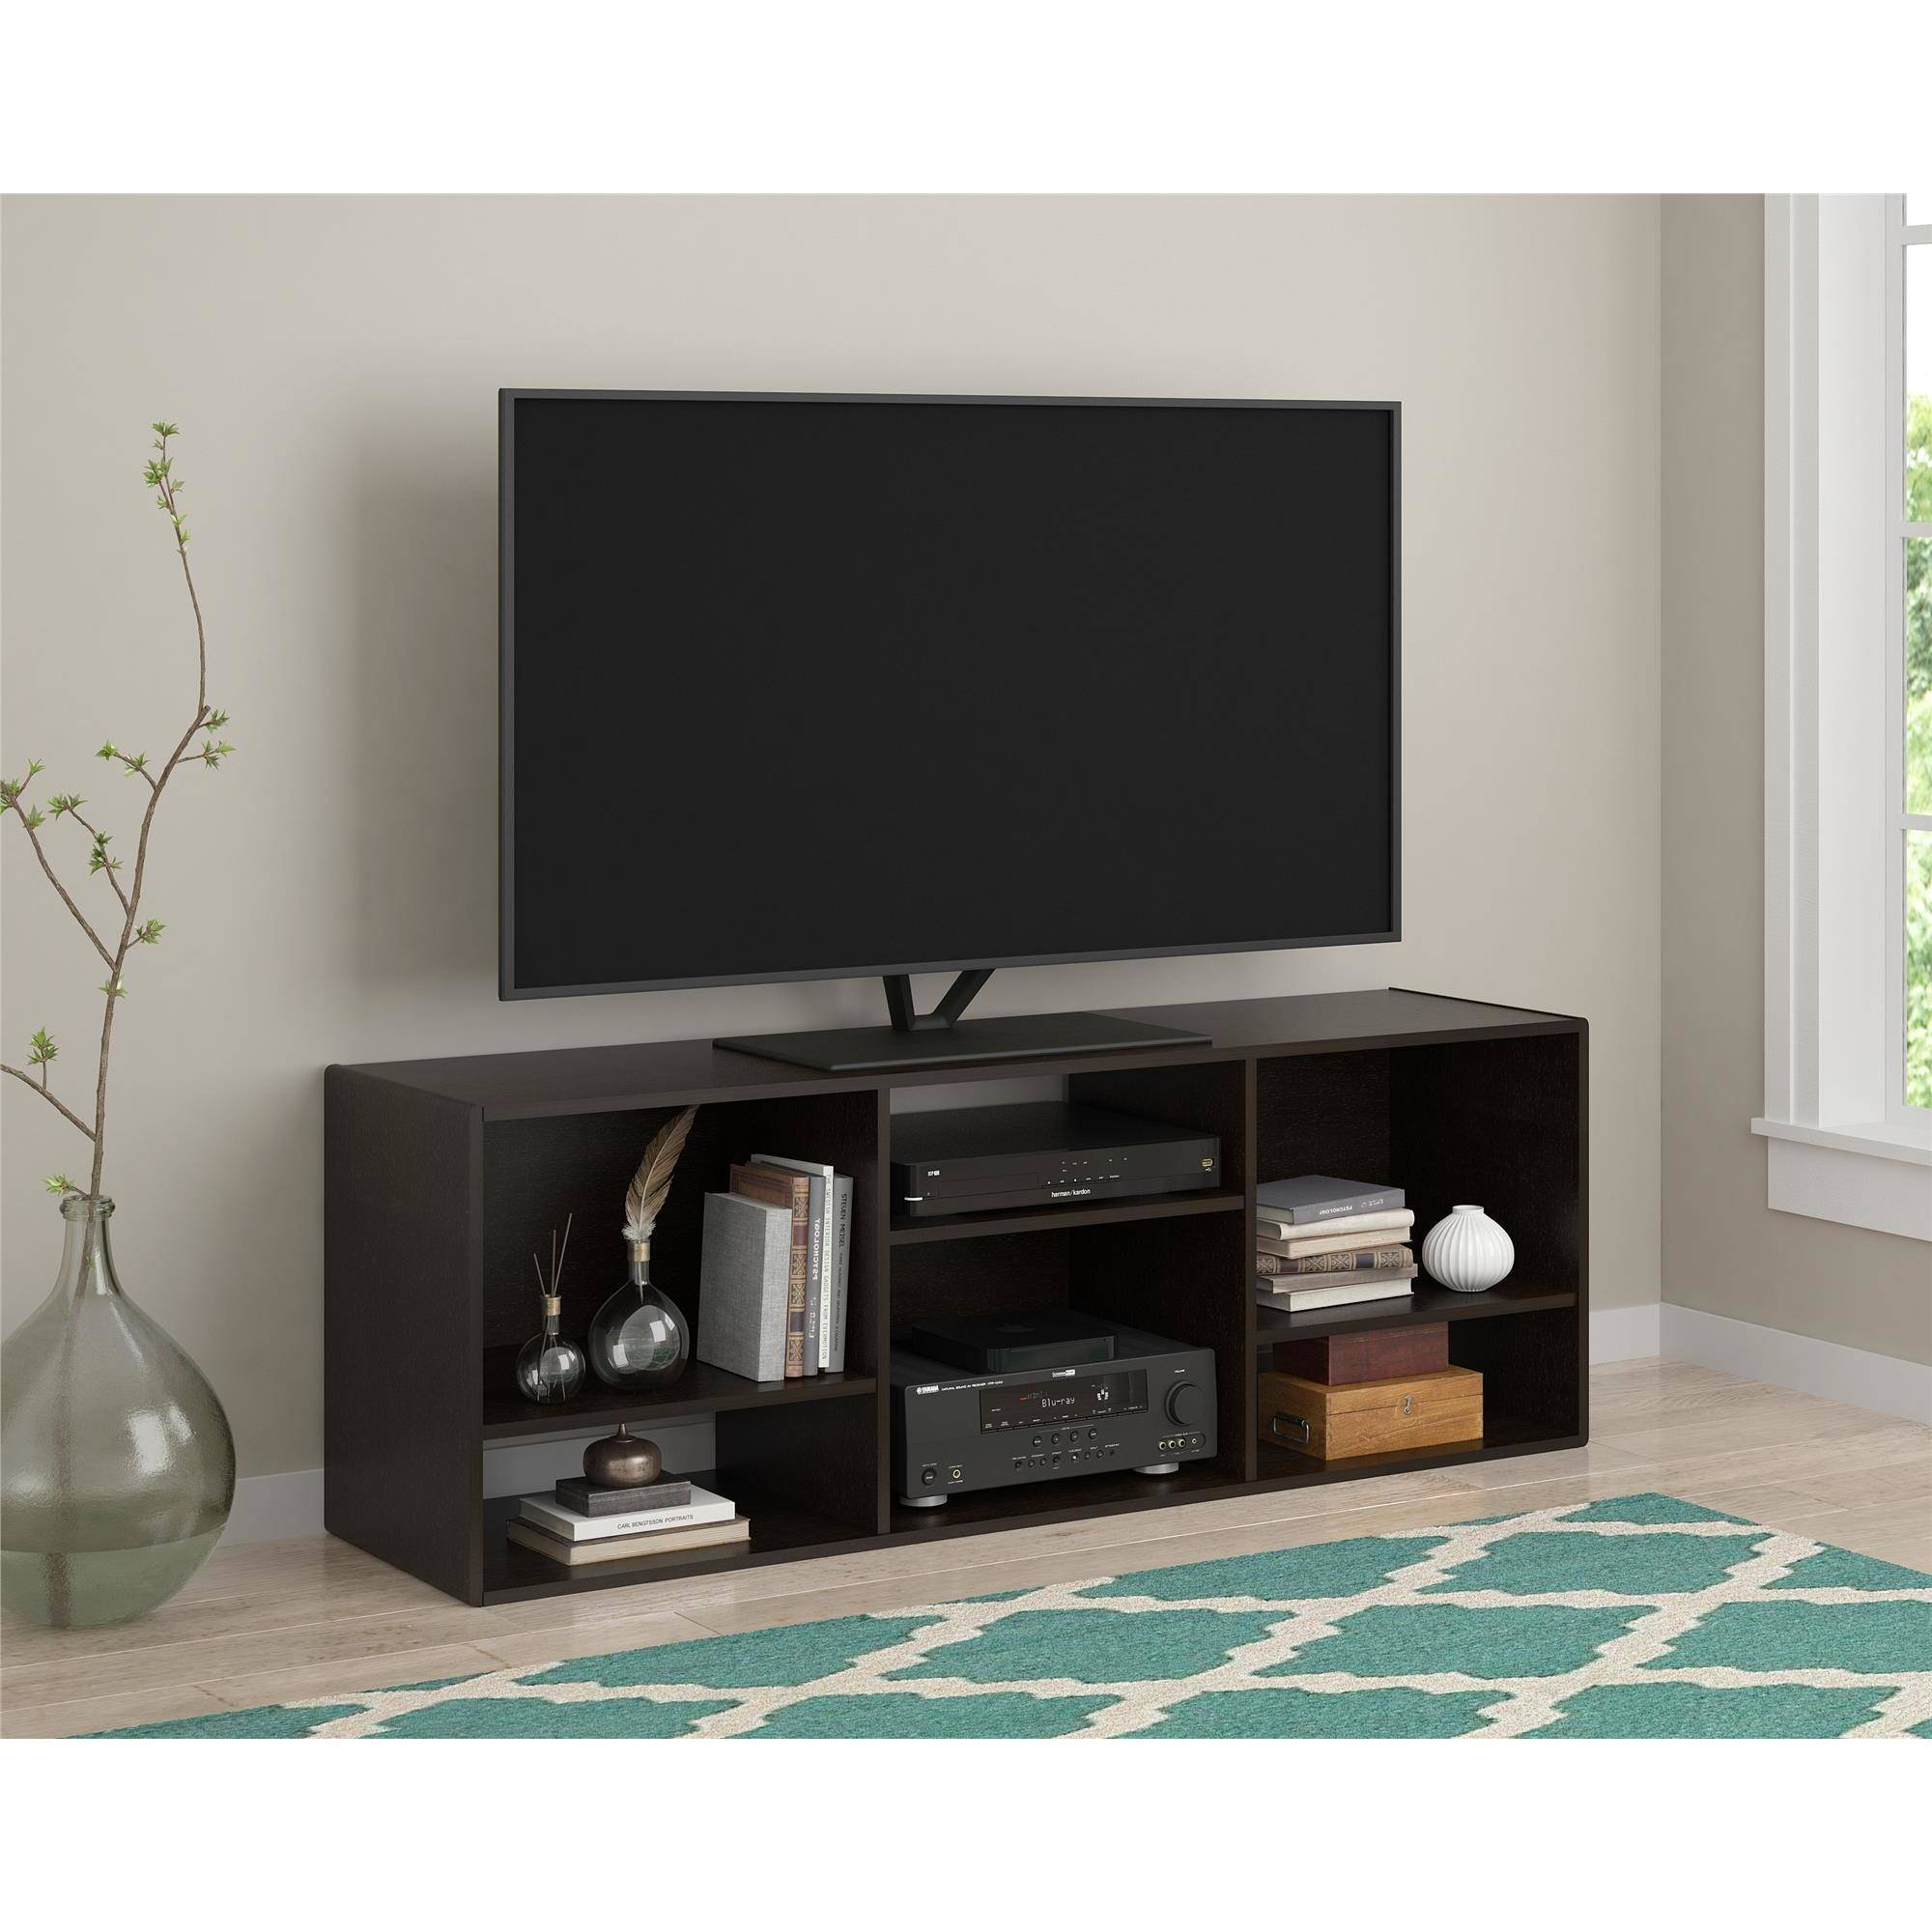 Ameriwood Home Nash Bookcase Tv Stand For Tvs Up To 60 Espresso